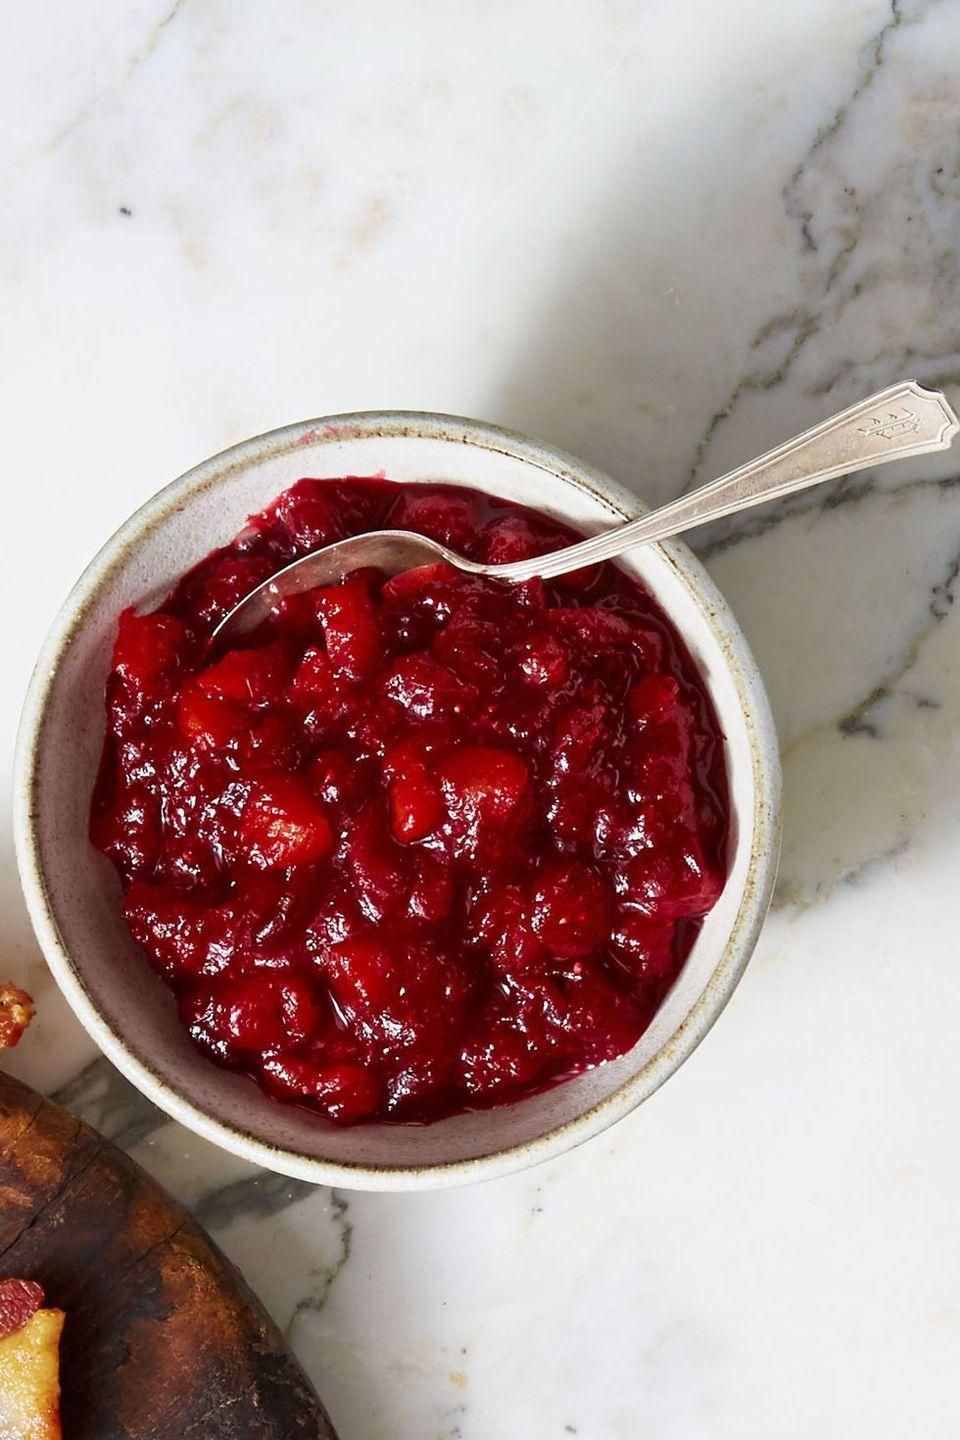 """<p>Complete your Turkey Day feast with this sweet and tangy vegan compote. Don't worry if you're stuck with leftovers, you can freeze this <a href=""""http://www.goodhousekeeping.com/holidays/thanksgiving-ideas/g112/cranberry-sauce-recipes/"""" rel=""""nofollow noopener"""" target=""""_blank"""" data-ylk=""""slk:cranberry side dish"""" class=""""link rapid-noclick-resp"""">cranberry side dish</a> for up to two months.</p><p><em><a href=""""https://www.goodhousekeeping.com/food-recipes/easy/a46615/citrusy-cranberry-apricot-compote-recipe/"""" rel=""""nofollow noopener"""" target=""""_blank"""" data-ylk=""""slk:Get the recipe for Citrusy Cranberry-Apricot Compote »"""" class=""""link rapid-noclick-resp"""">Get the recipe for Citrusy Cranberry-Apricot Compote »</a></em> </p>"""